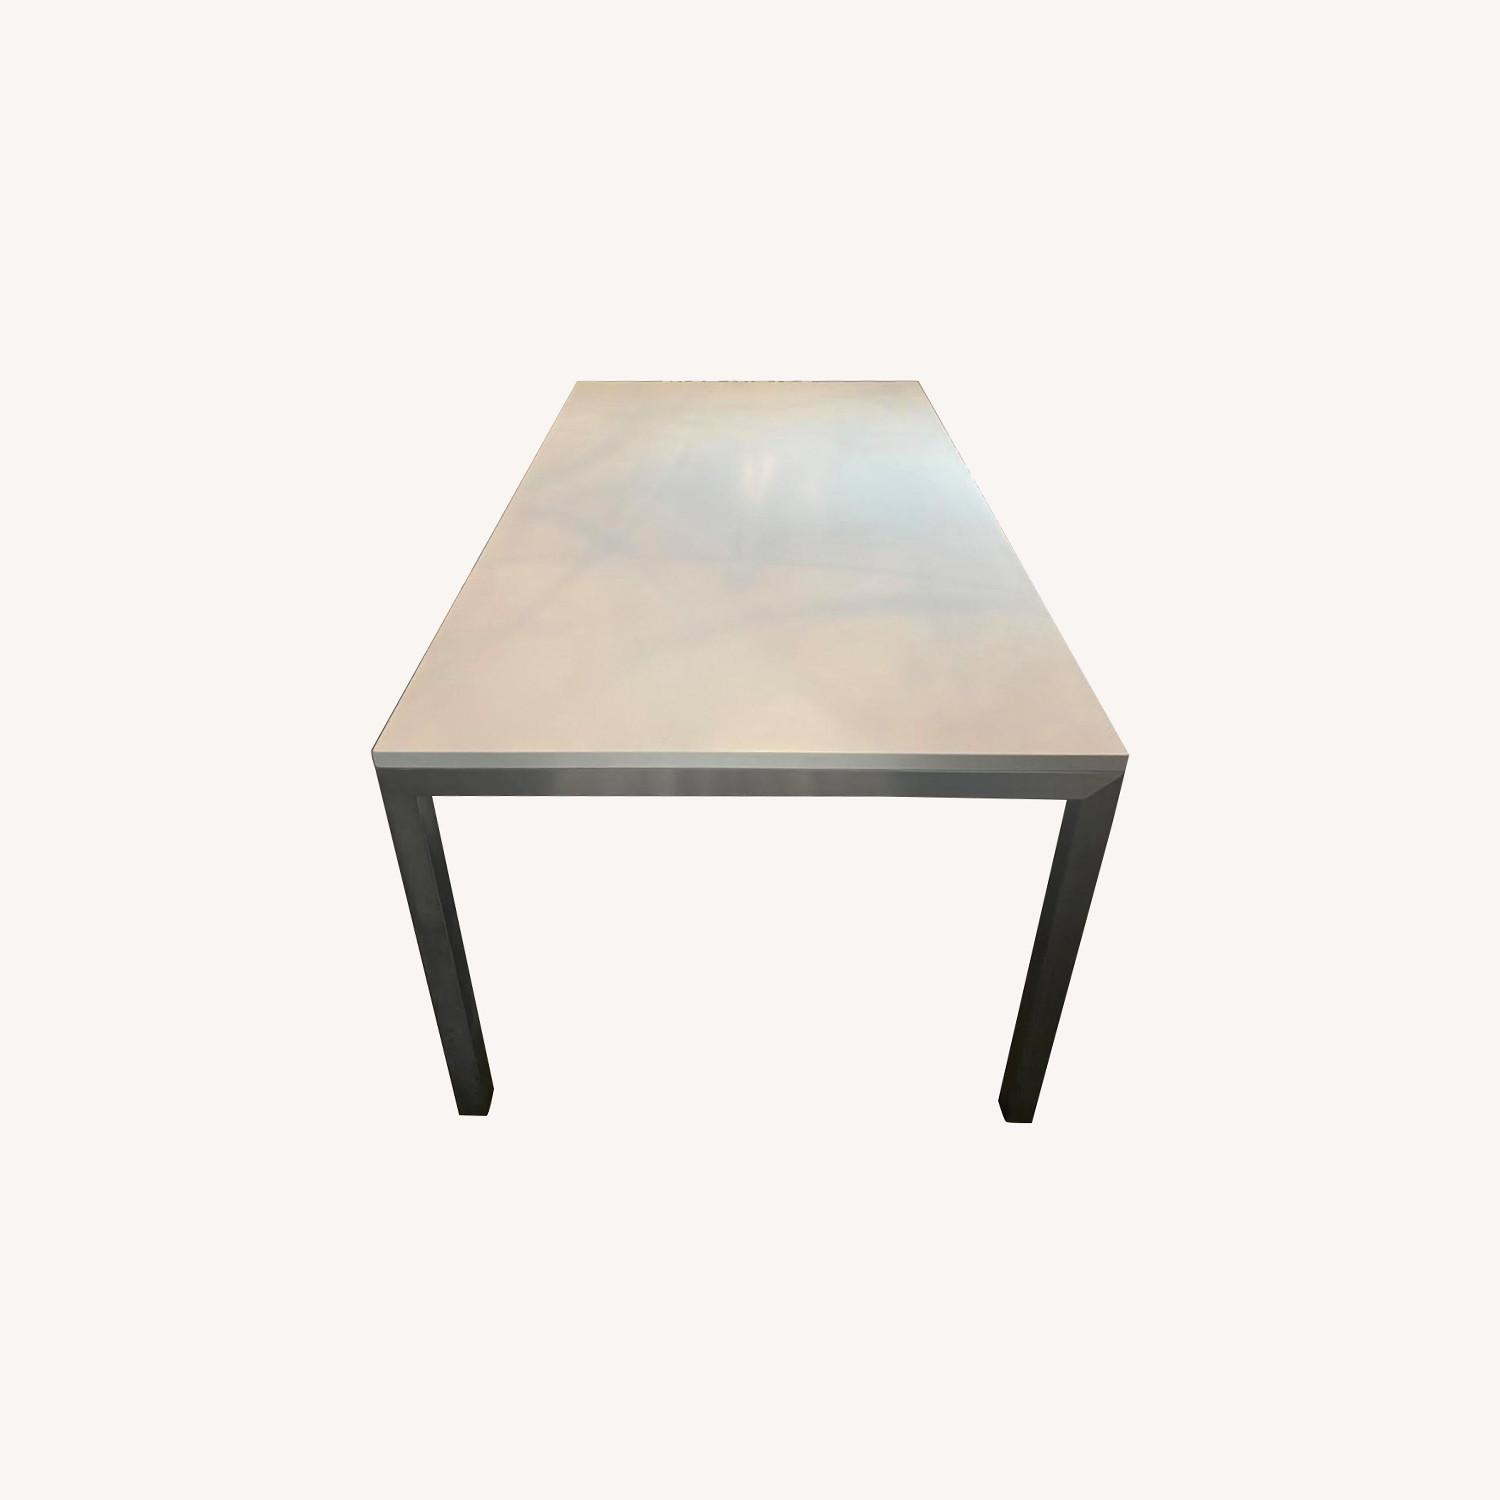 Crate & Barrel Stainless Steel Dining Table - image-0